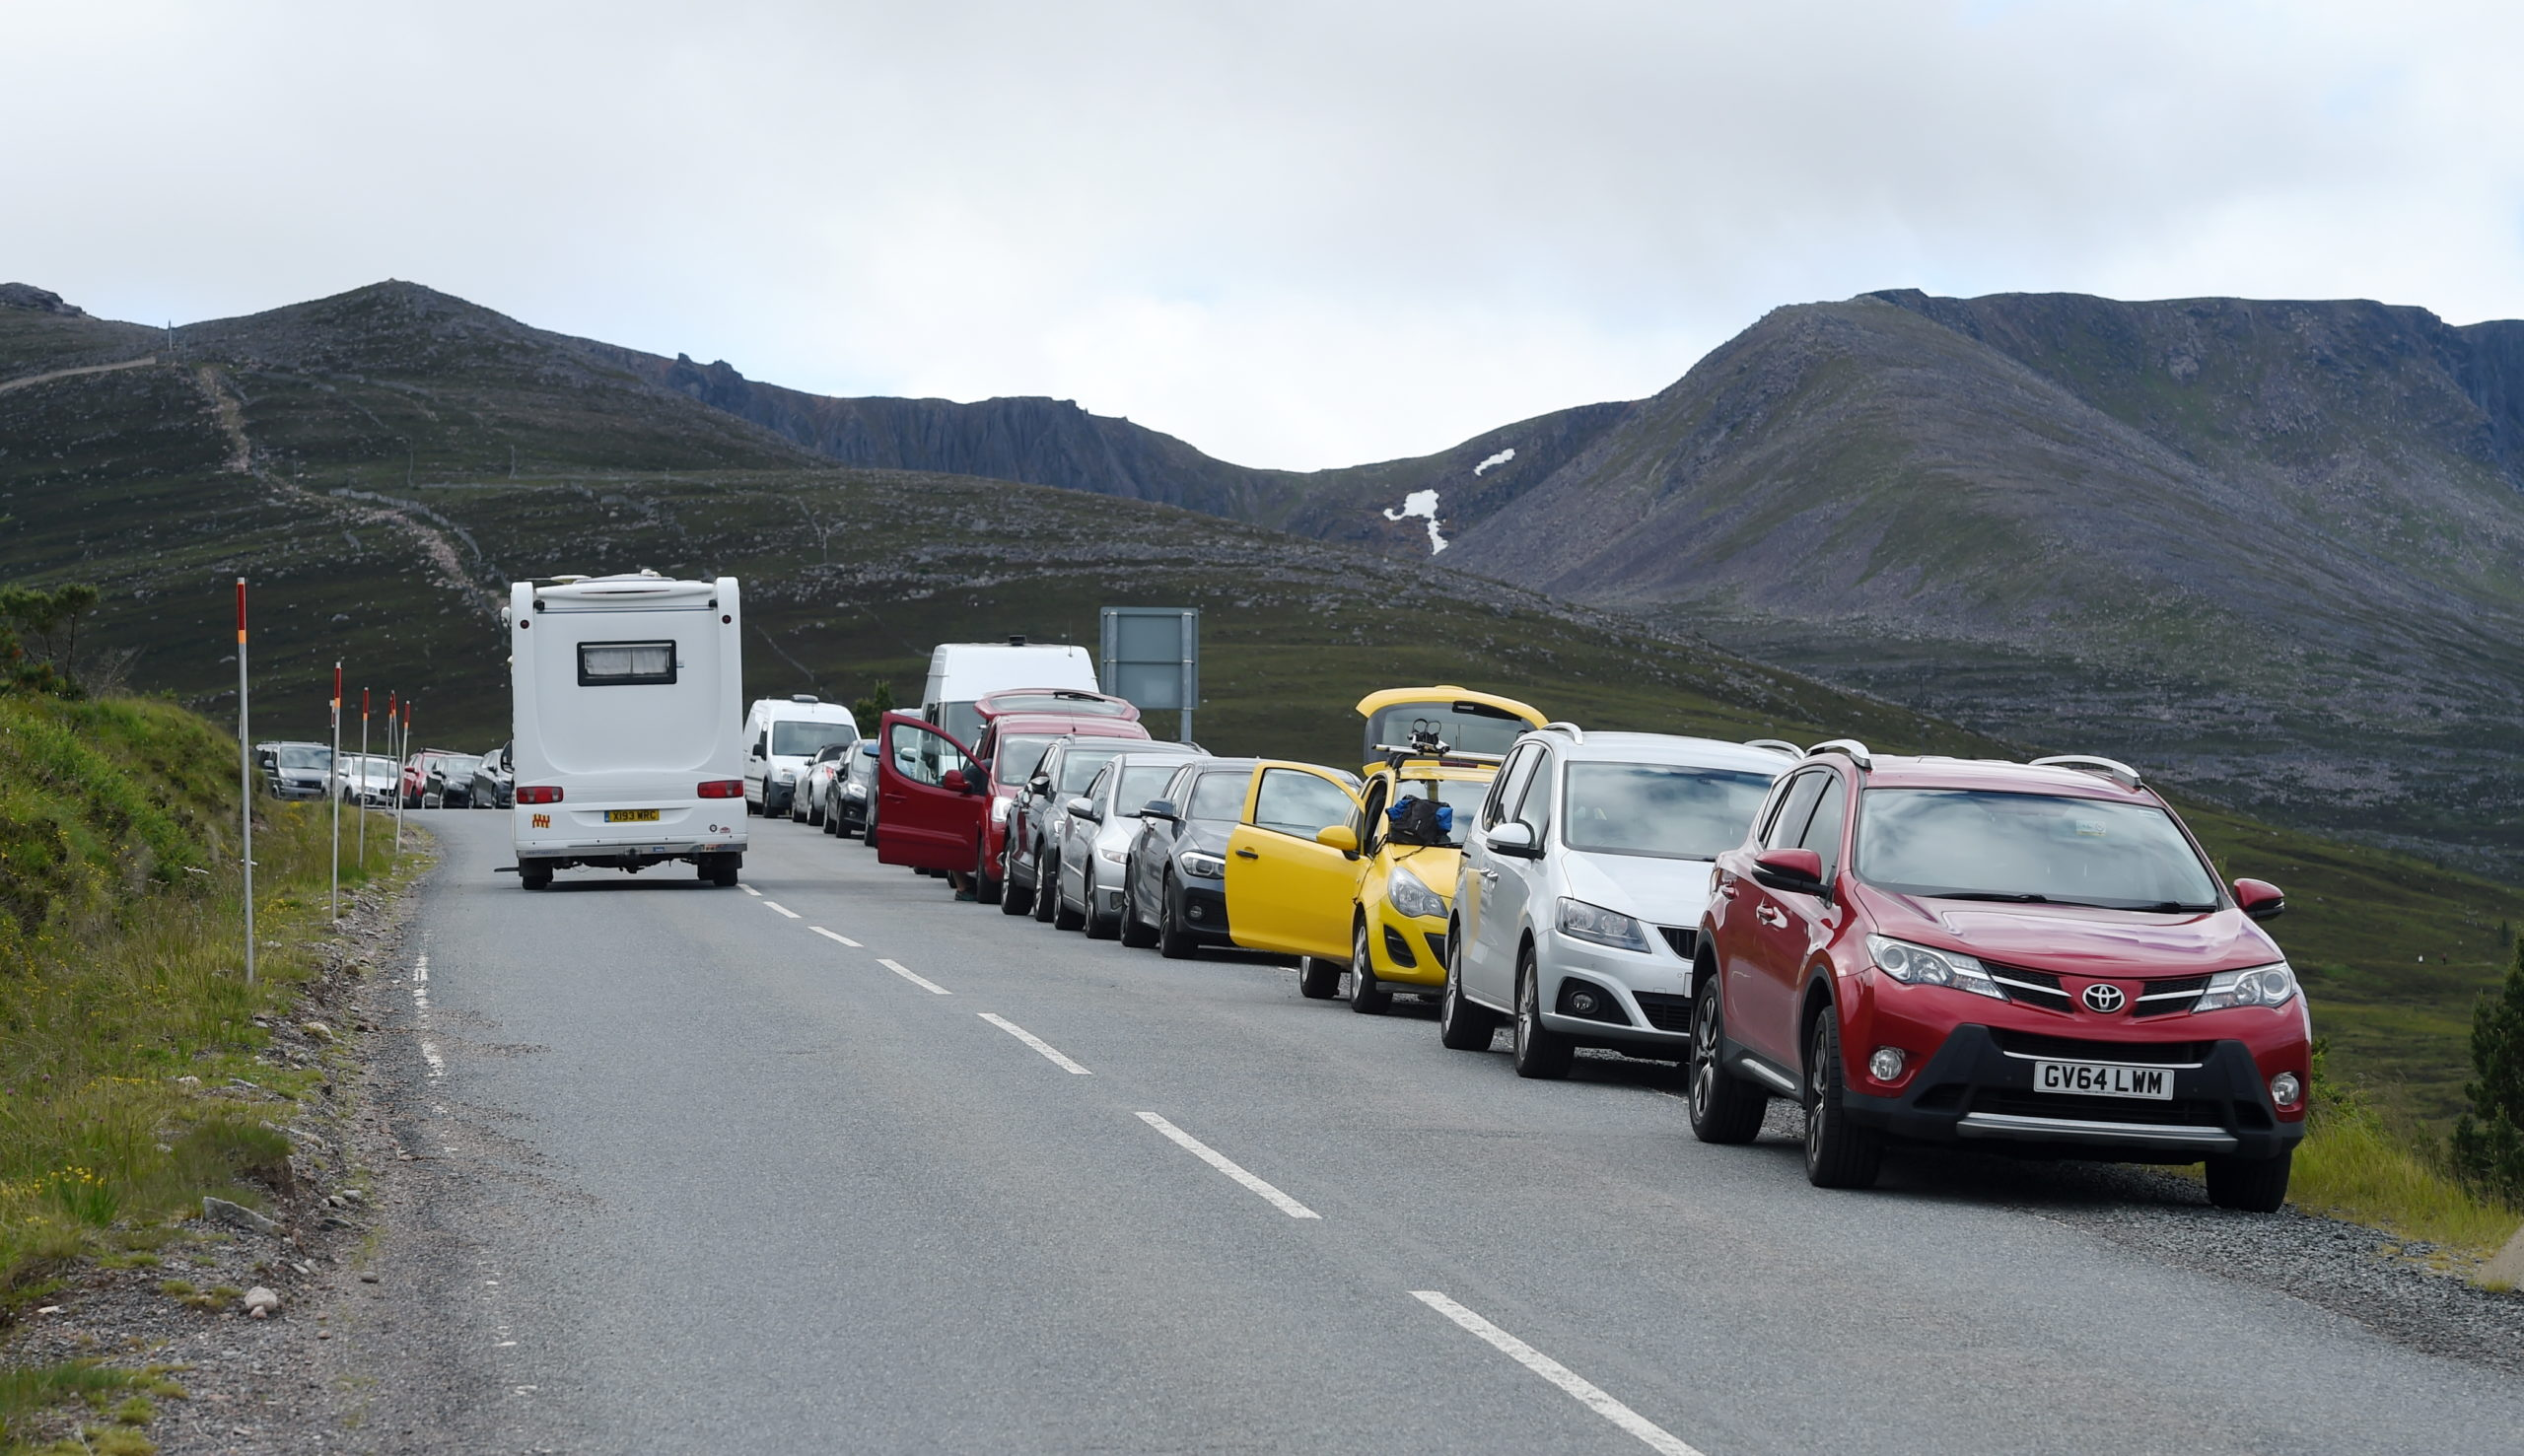 Holidaymakers use car parks as unofficial campsites with their motorhomes, caravans and tents in the Glenmore and Cairngorm areas despite toilets being closed and the Glenmore Camp Site remaining closed until next year. A line of over 100 cars and vans was parked alongsid and on te Cairngorm Ski Road from the entrance to its car park as it remains closed as a result of Covid-19.